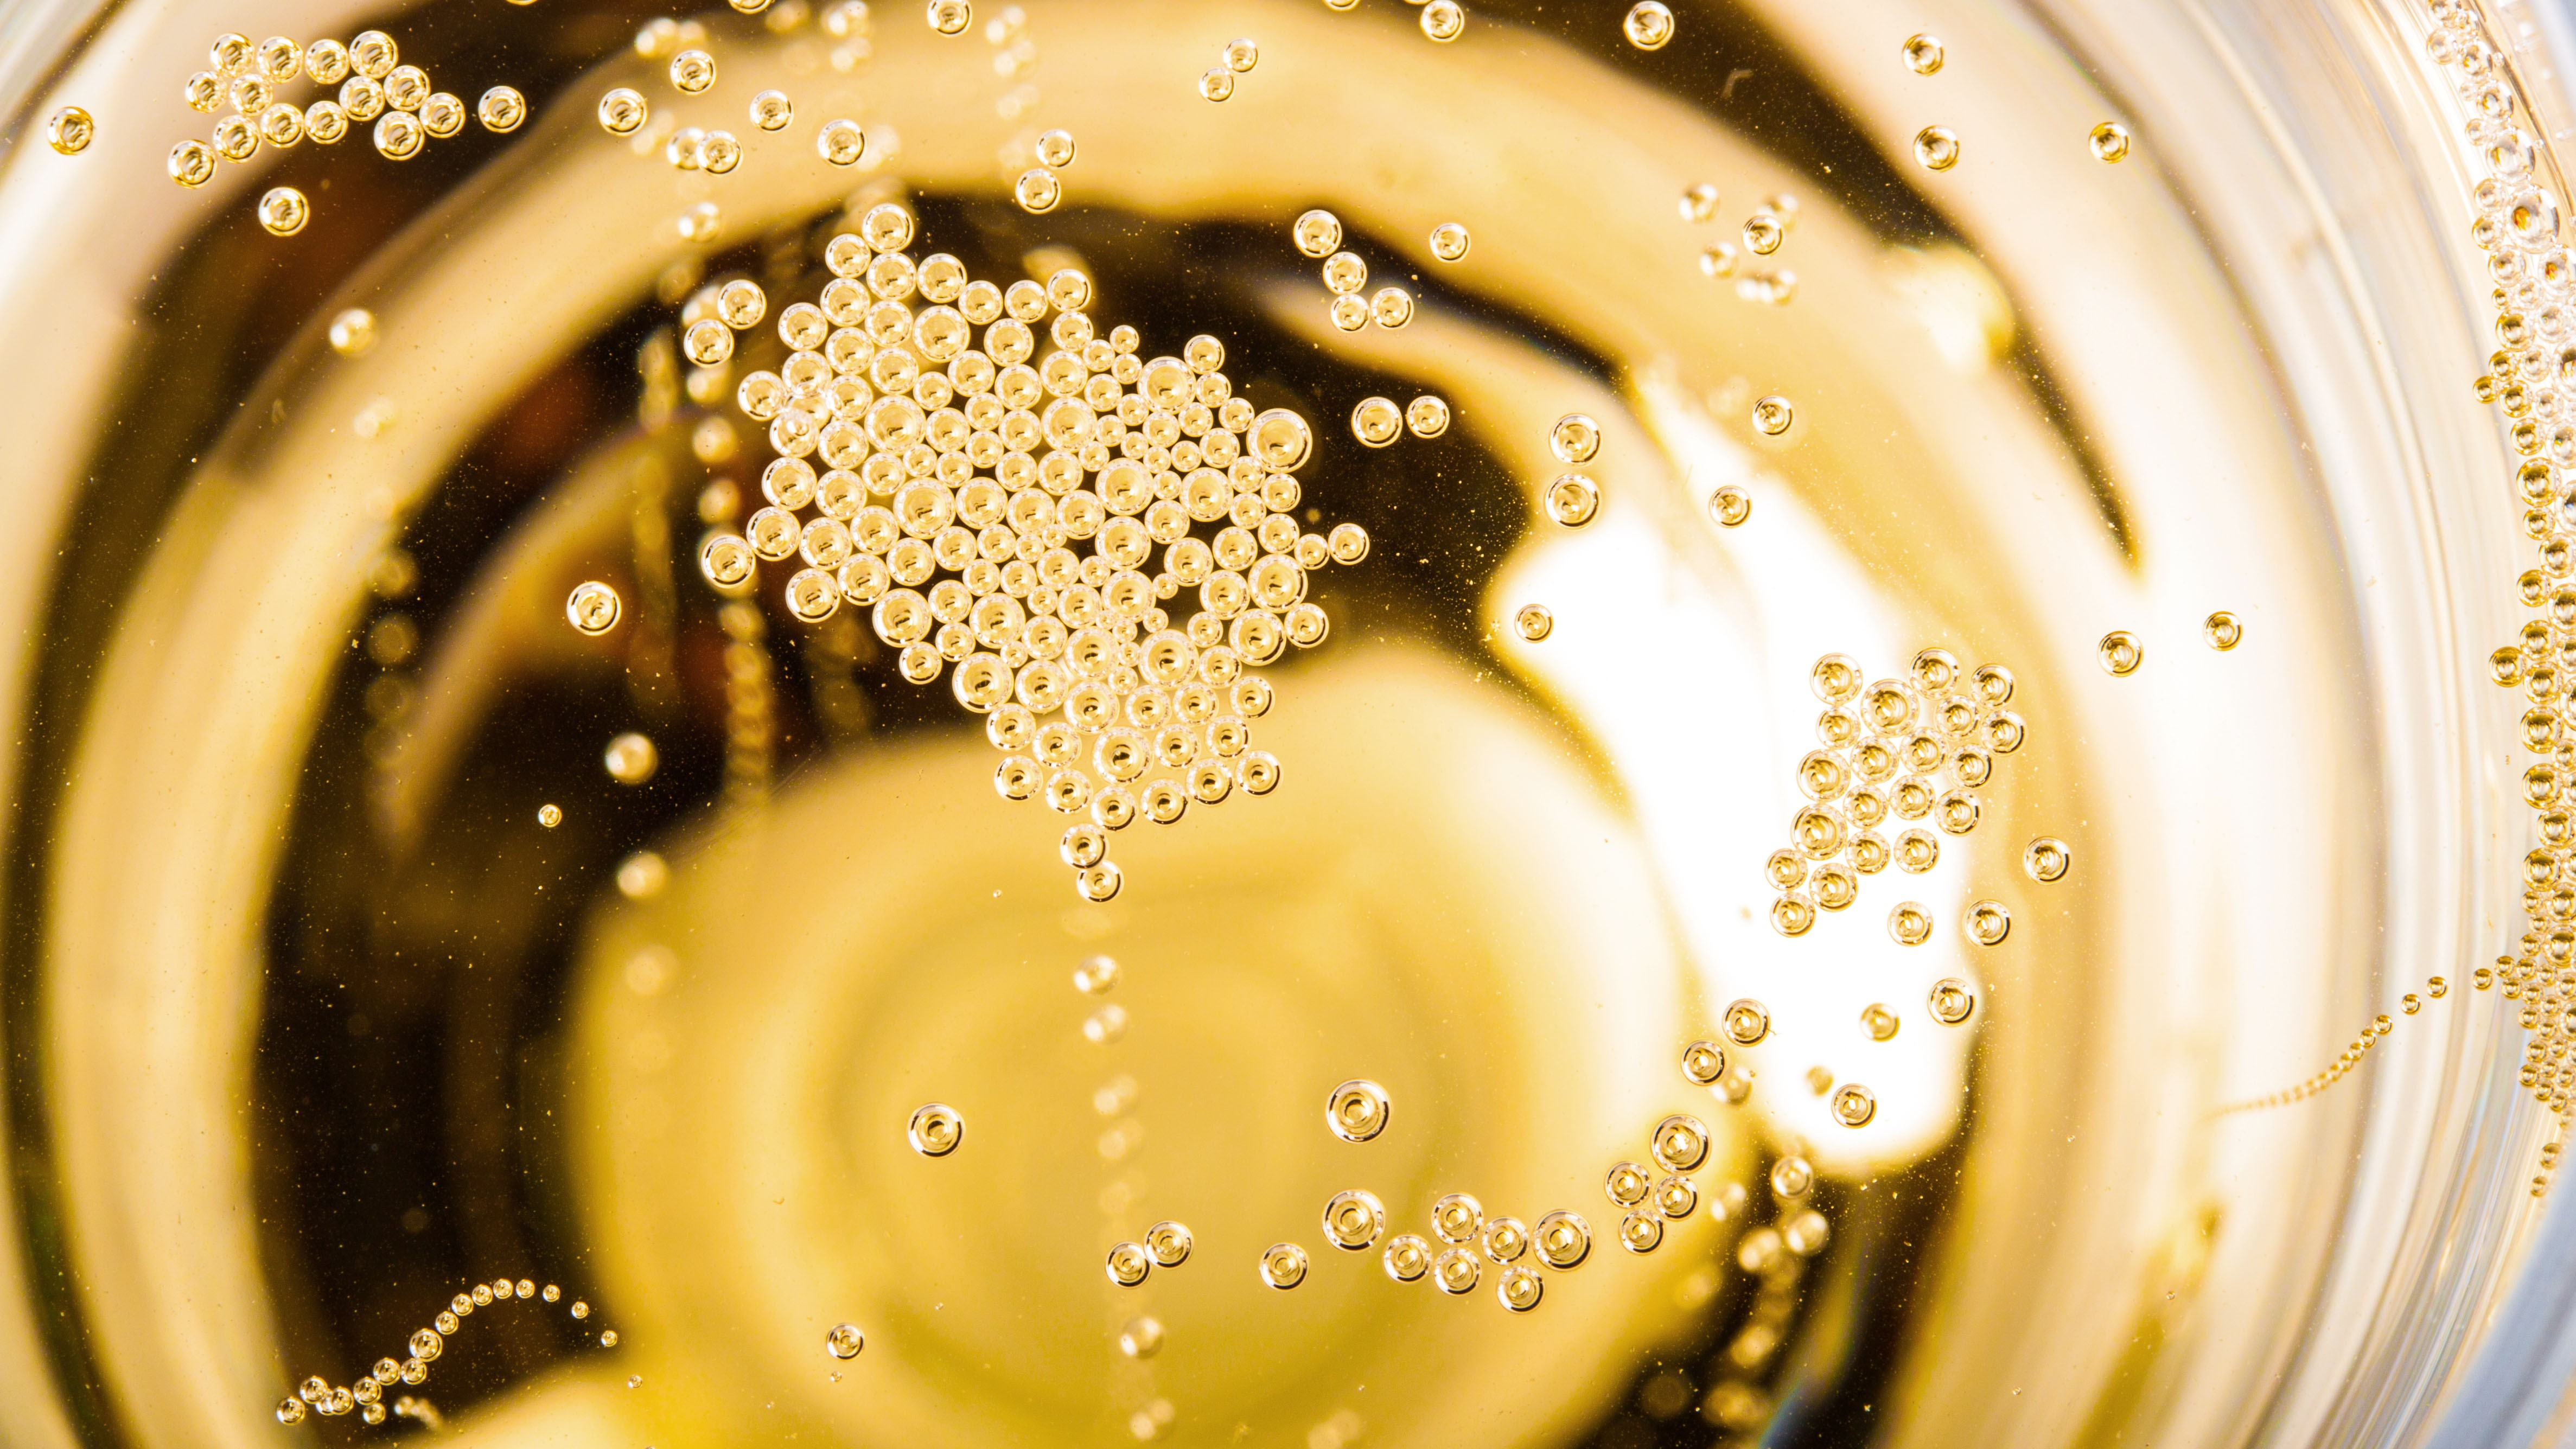 Close-up of champagne